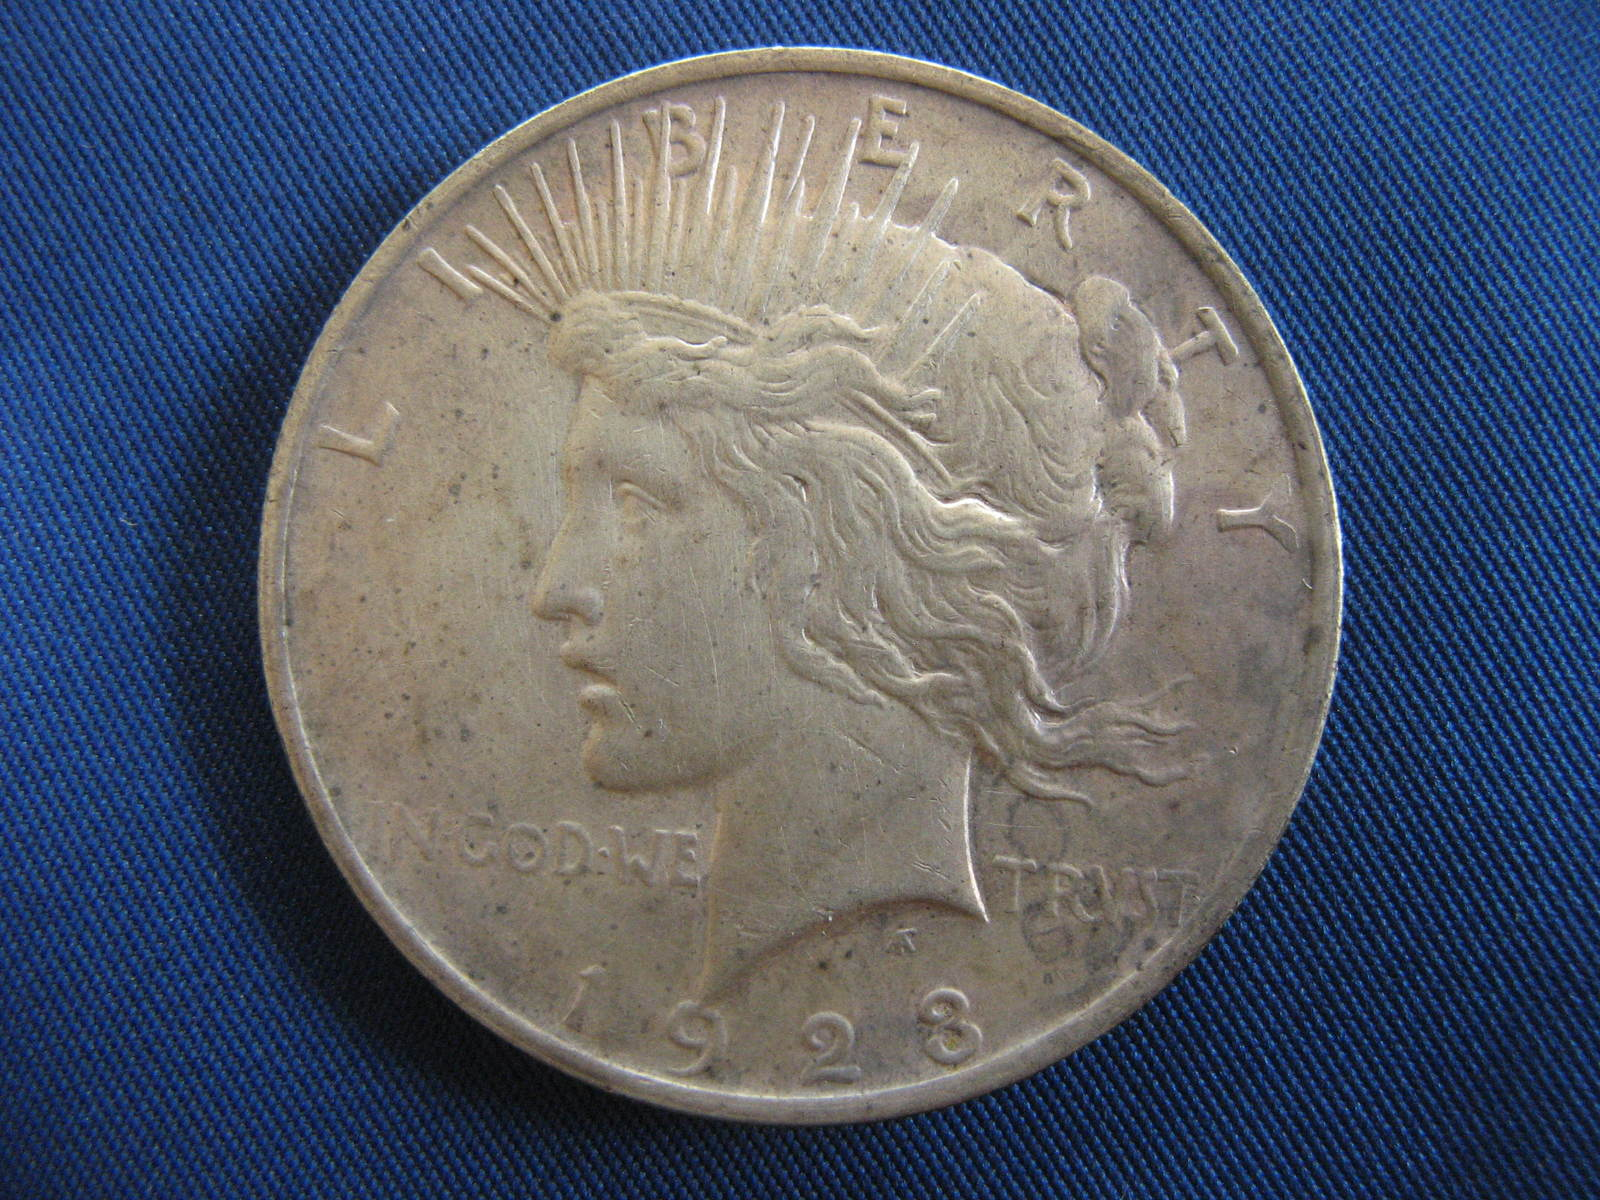 Primary image for 1923 Peace Silver Dollar - 90% Silver - (sku#4863)